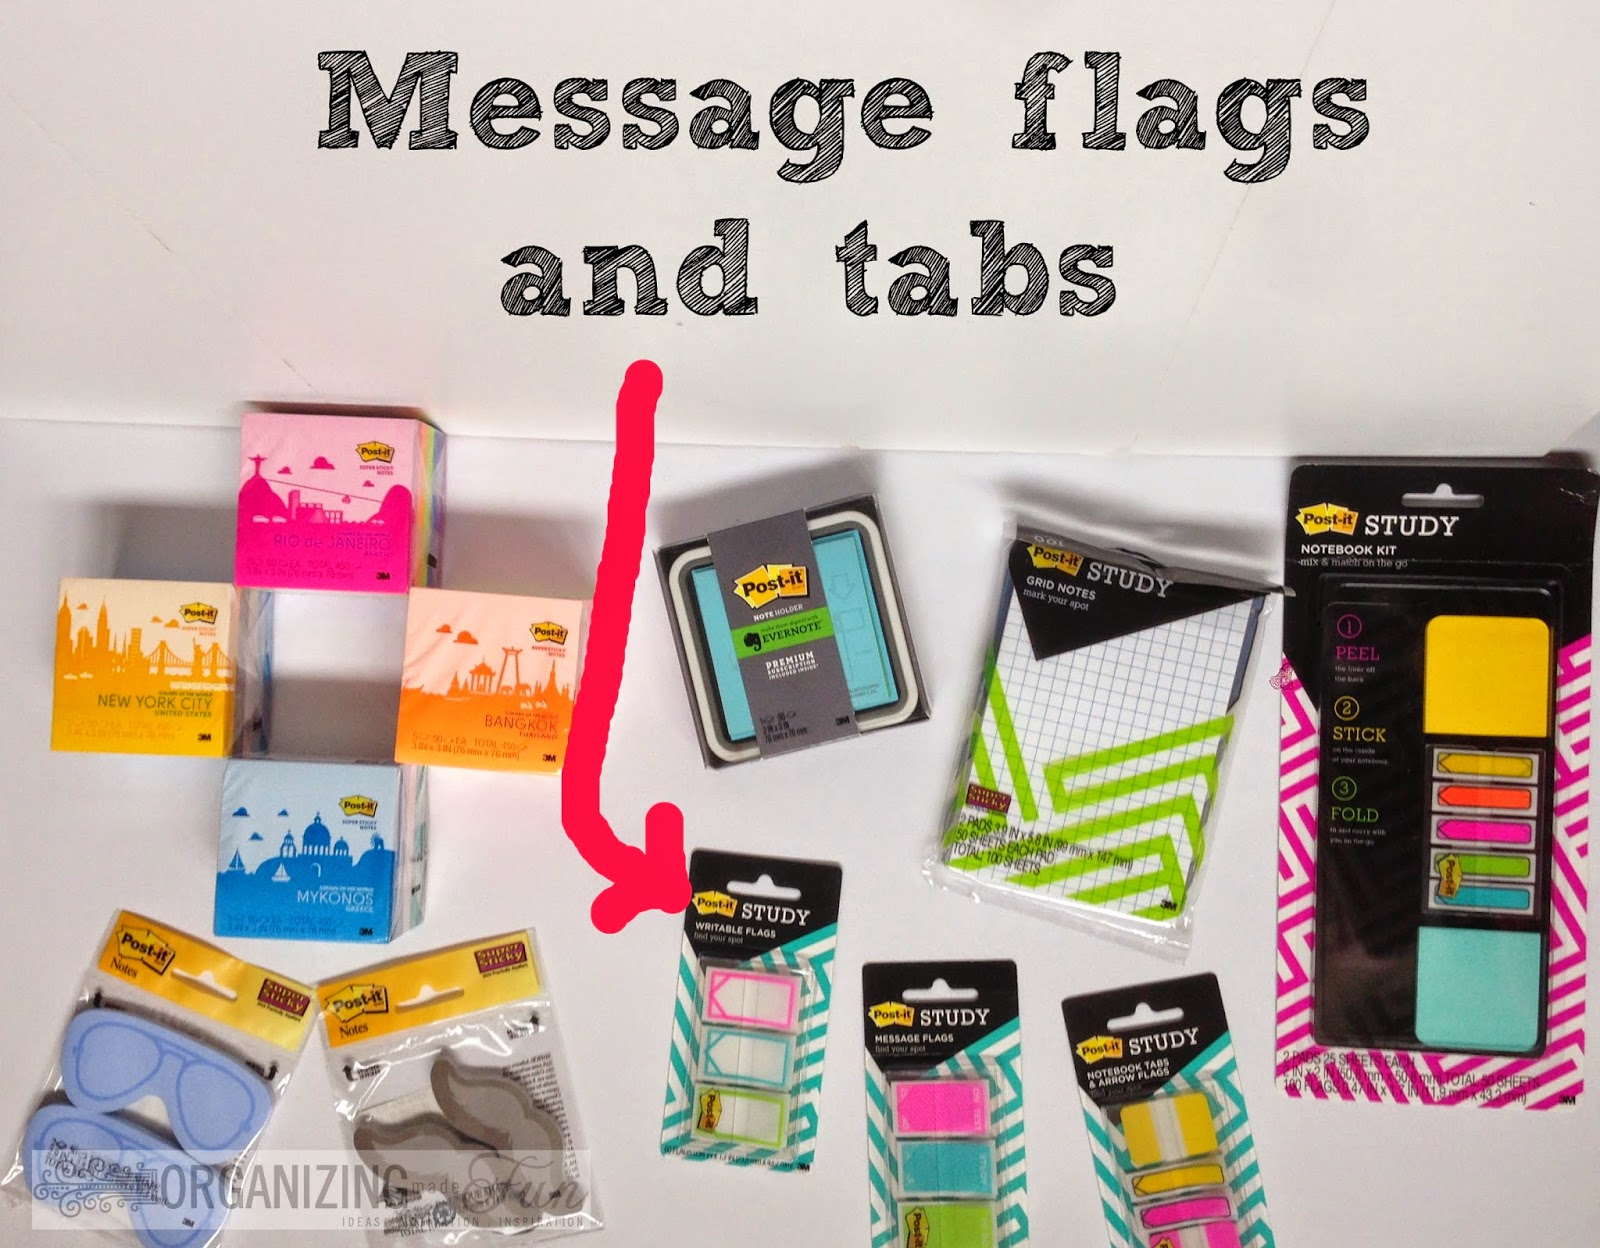 I love Post-it Message tabs and flags :: OrganizingMadeFun.com